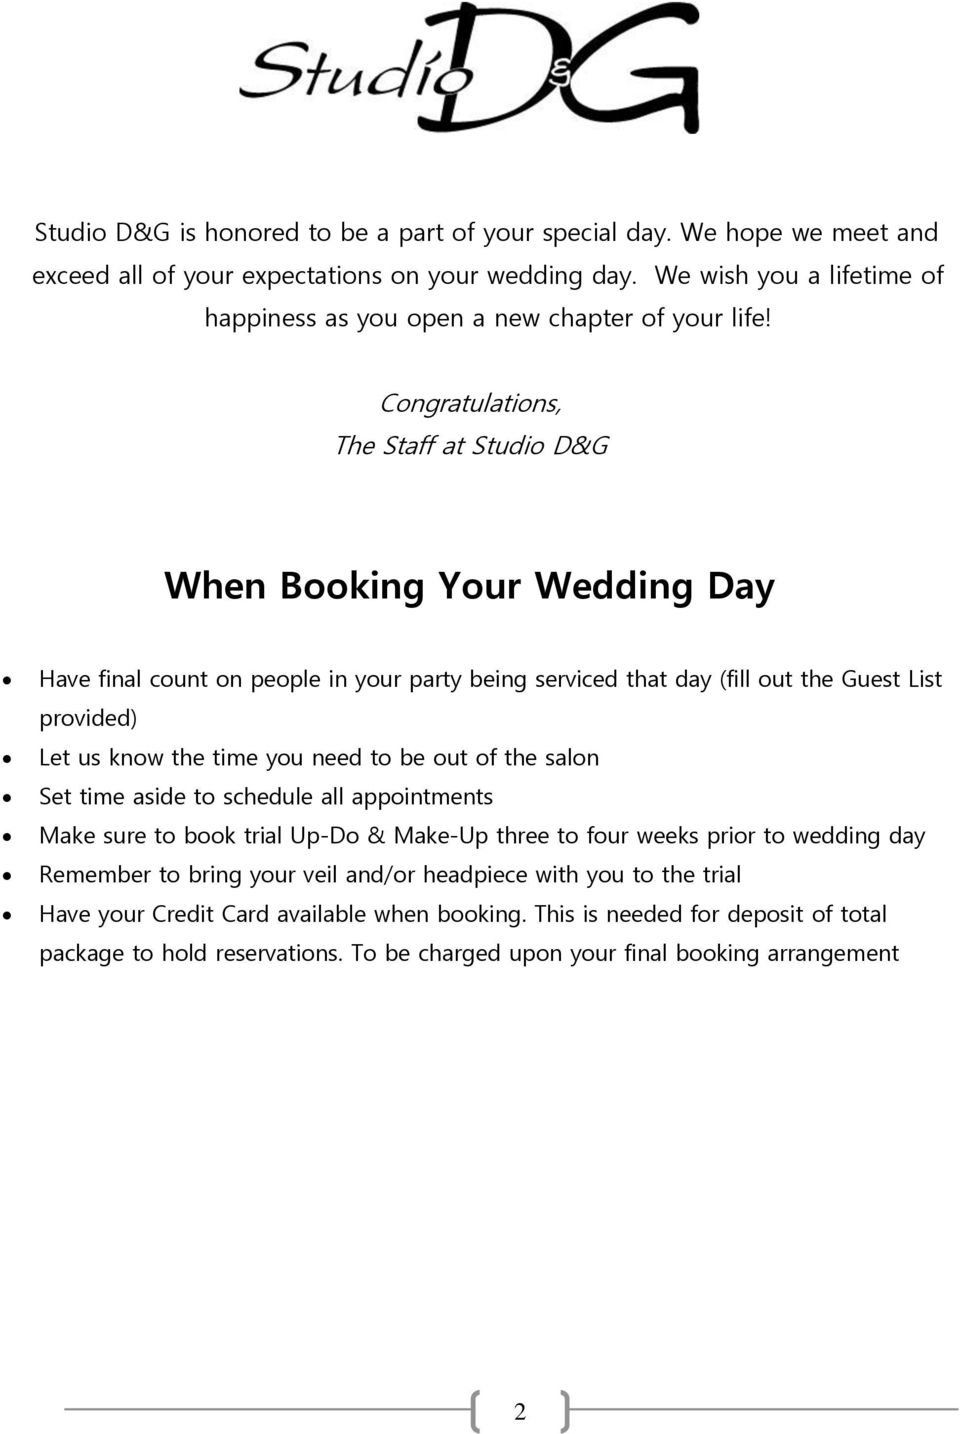 Congratulations, The Staff at Studio D&G When Booking Your Wedding Day Have final count on people in your party being serviced that day (fill out the Guest List provided) Let us know the time you